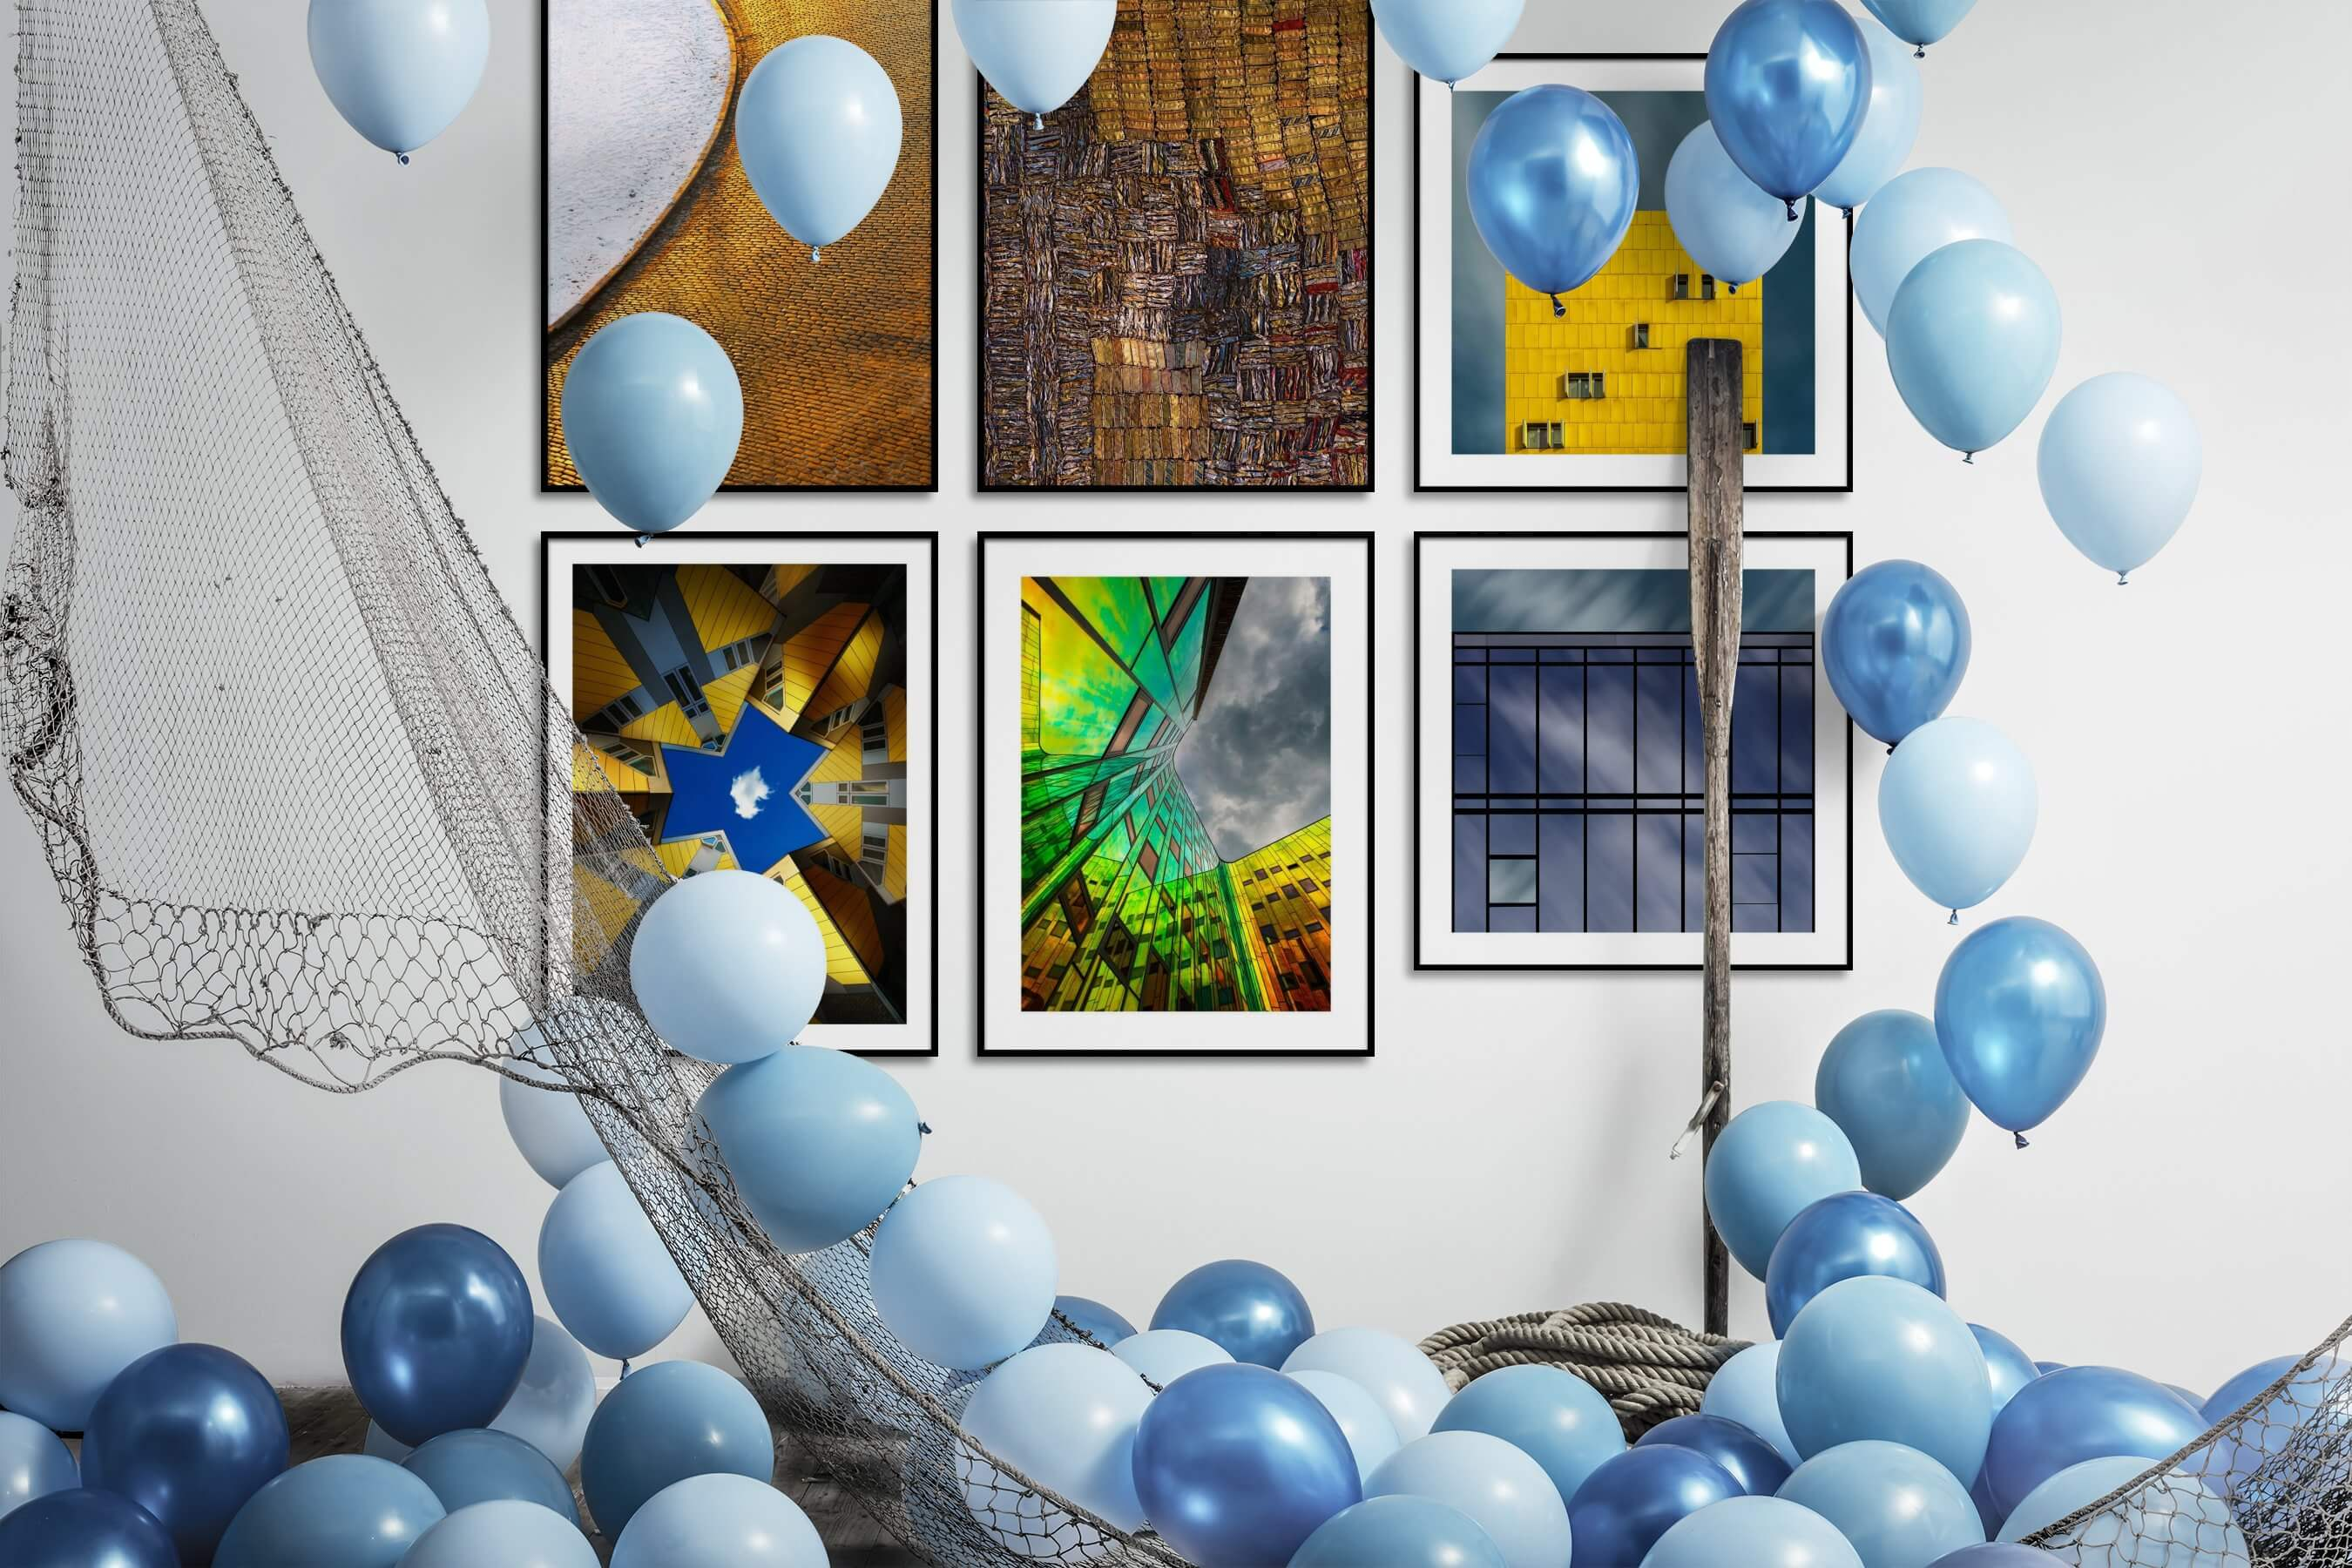 Gallery wall idea with six framed pictures arranged on a wall depicting For the Moderate, Colorful, For the Maximalist, City Life, and For the Minimalist